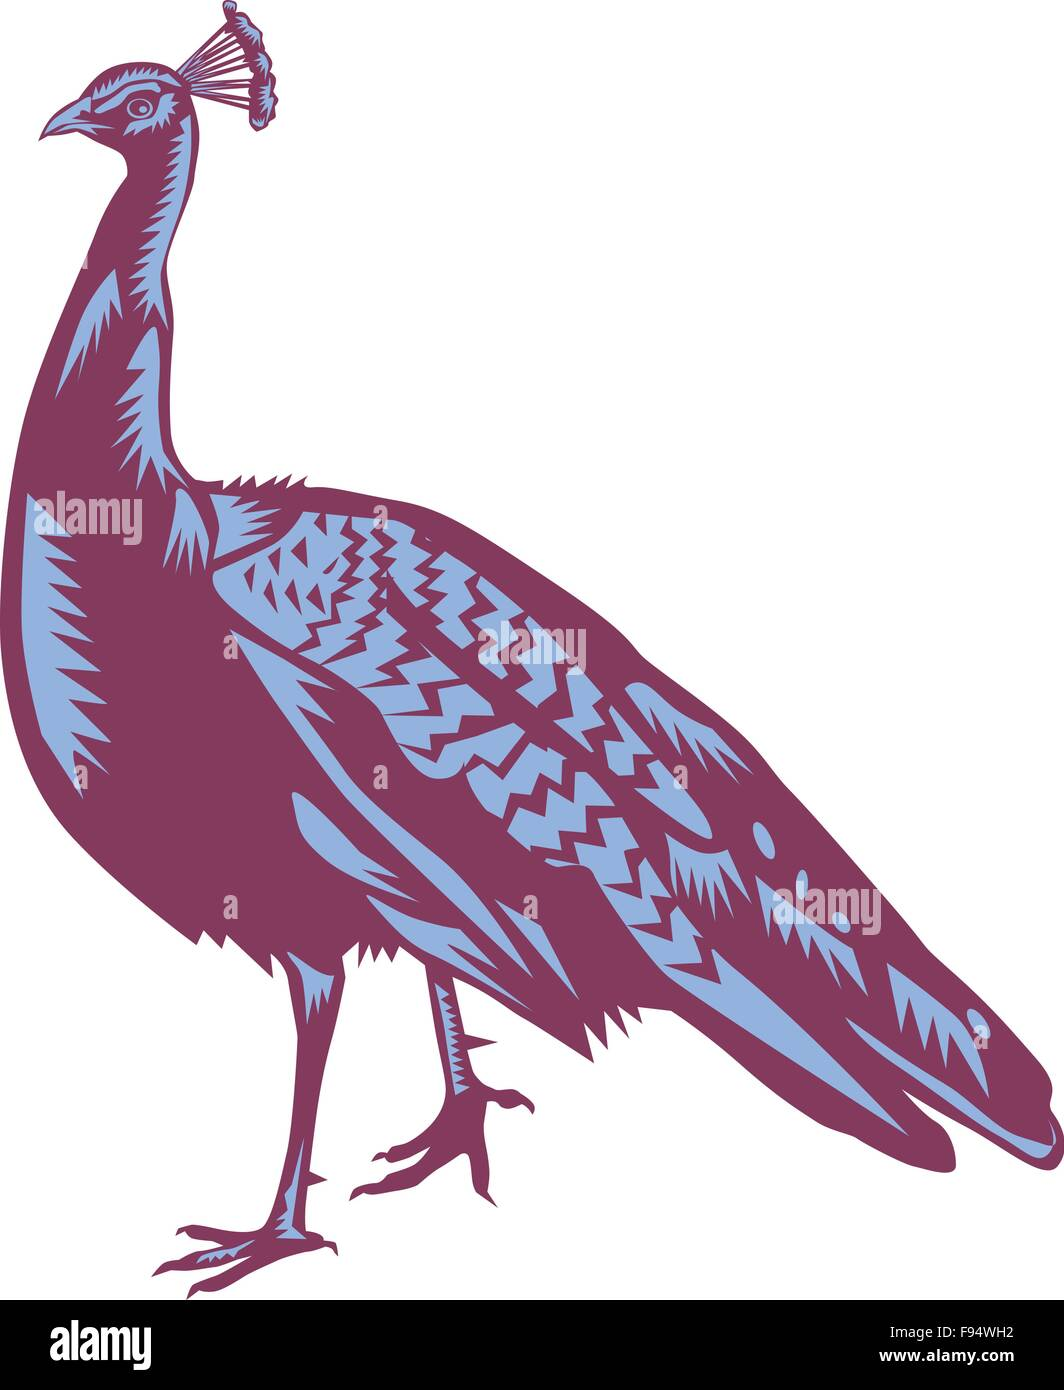 Illustration of a male Indian peacock of the bird species in the genera Pavo and Afropavo of the Phasianidae family - Stock Vector